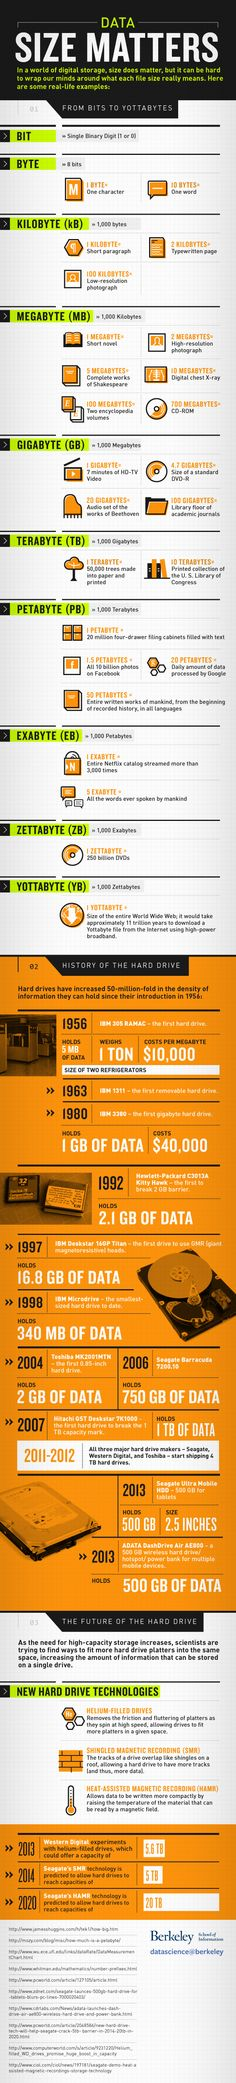 Data-Size-Matters [Infographic]